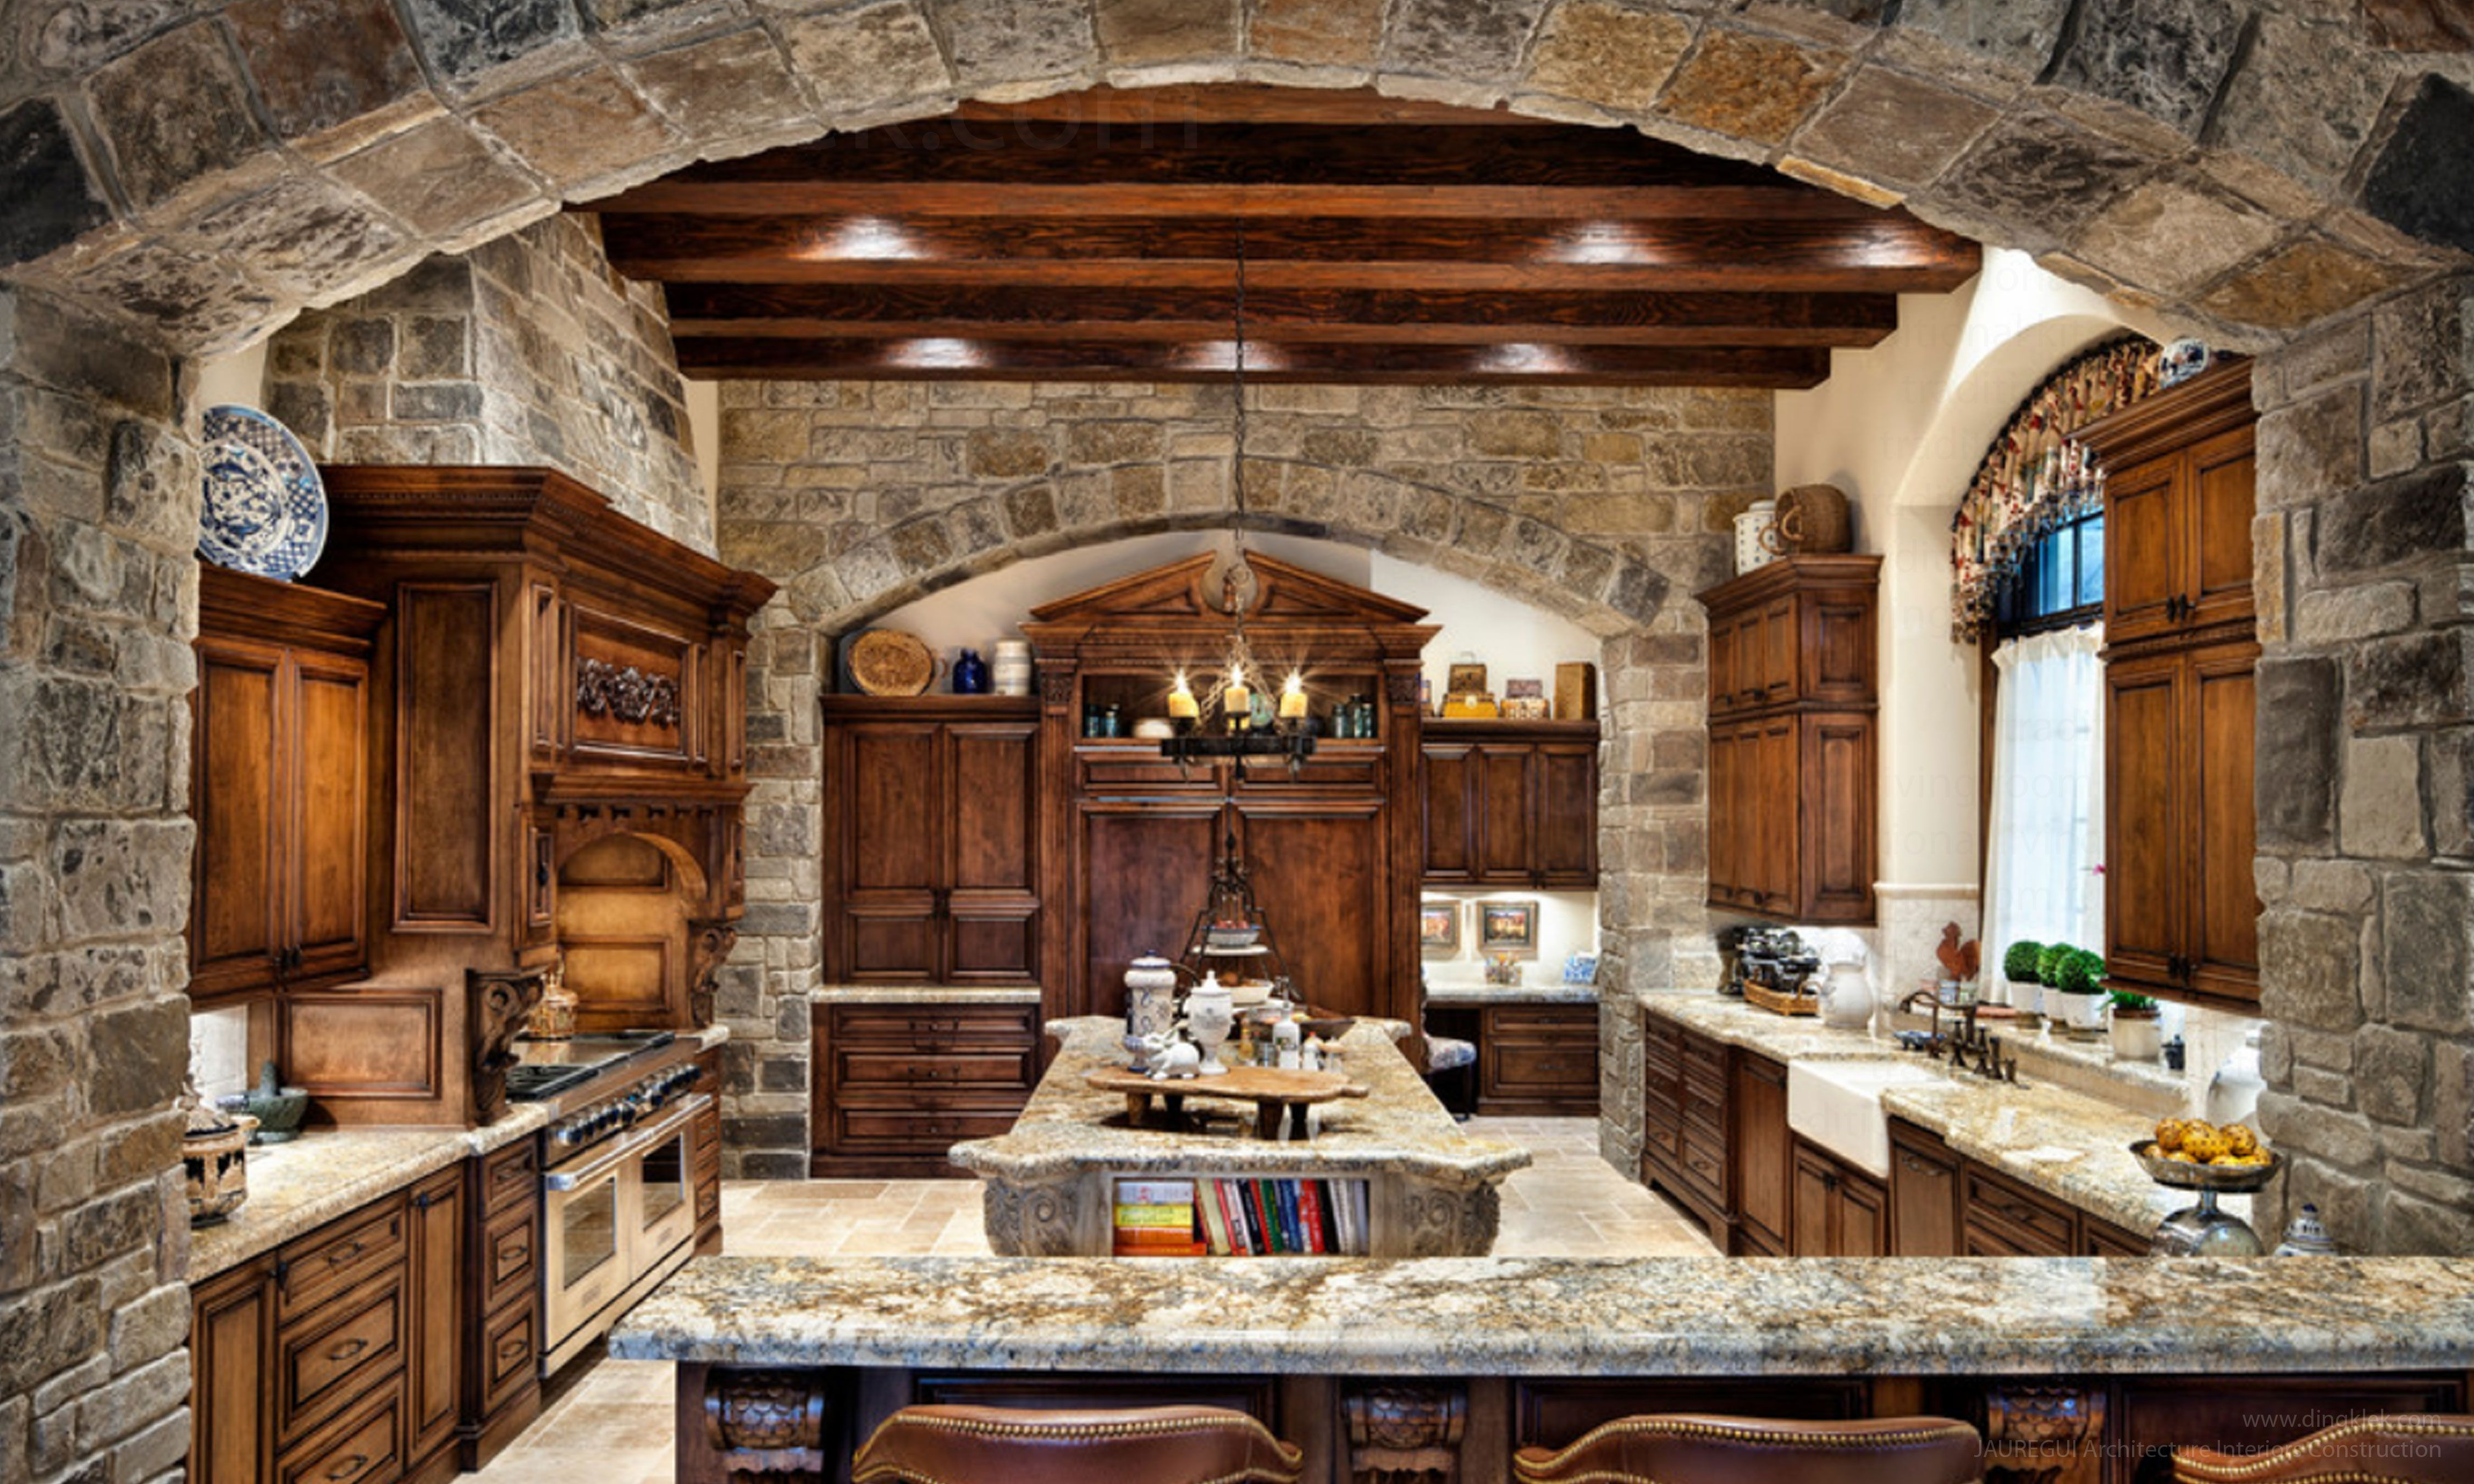 Latest Kitchen Designs Photos Amazing 20 Home Kitchen English Manor Latest Photos The